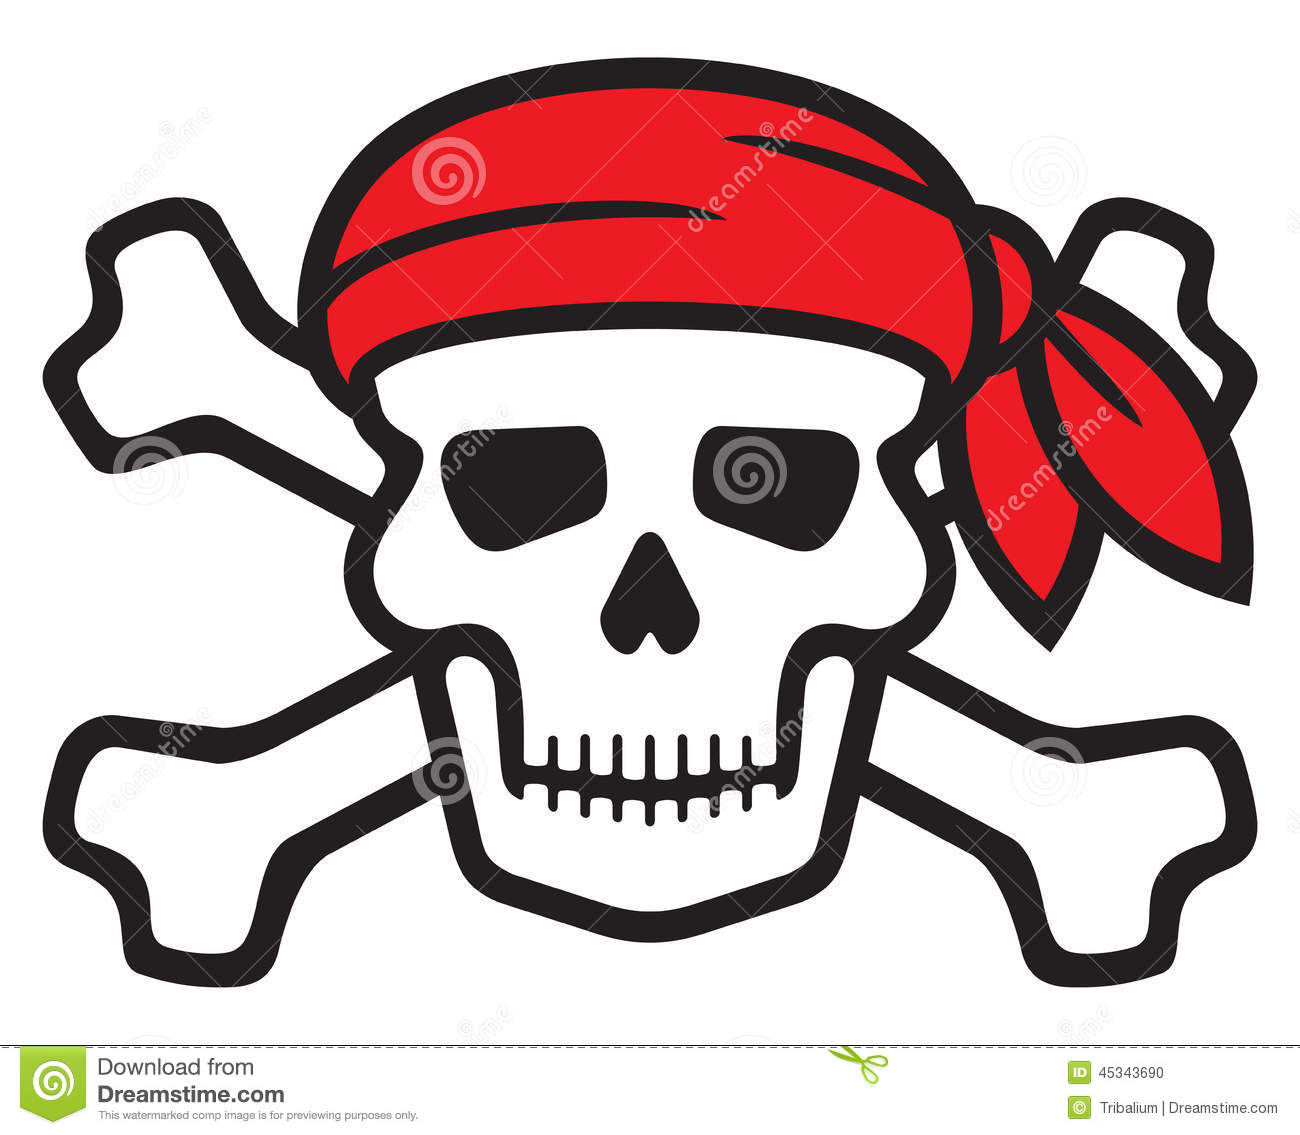 Pirates symbol, skull and cross bones, skull with crossed bones.